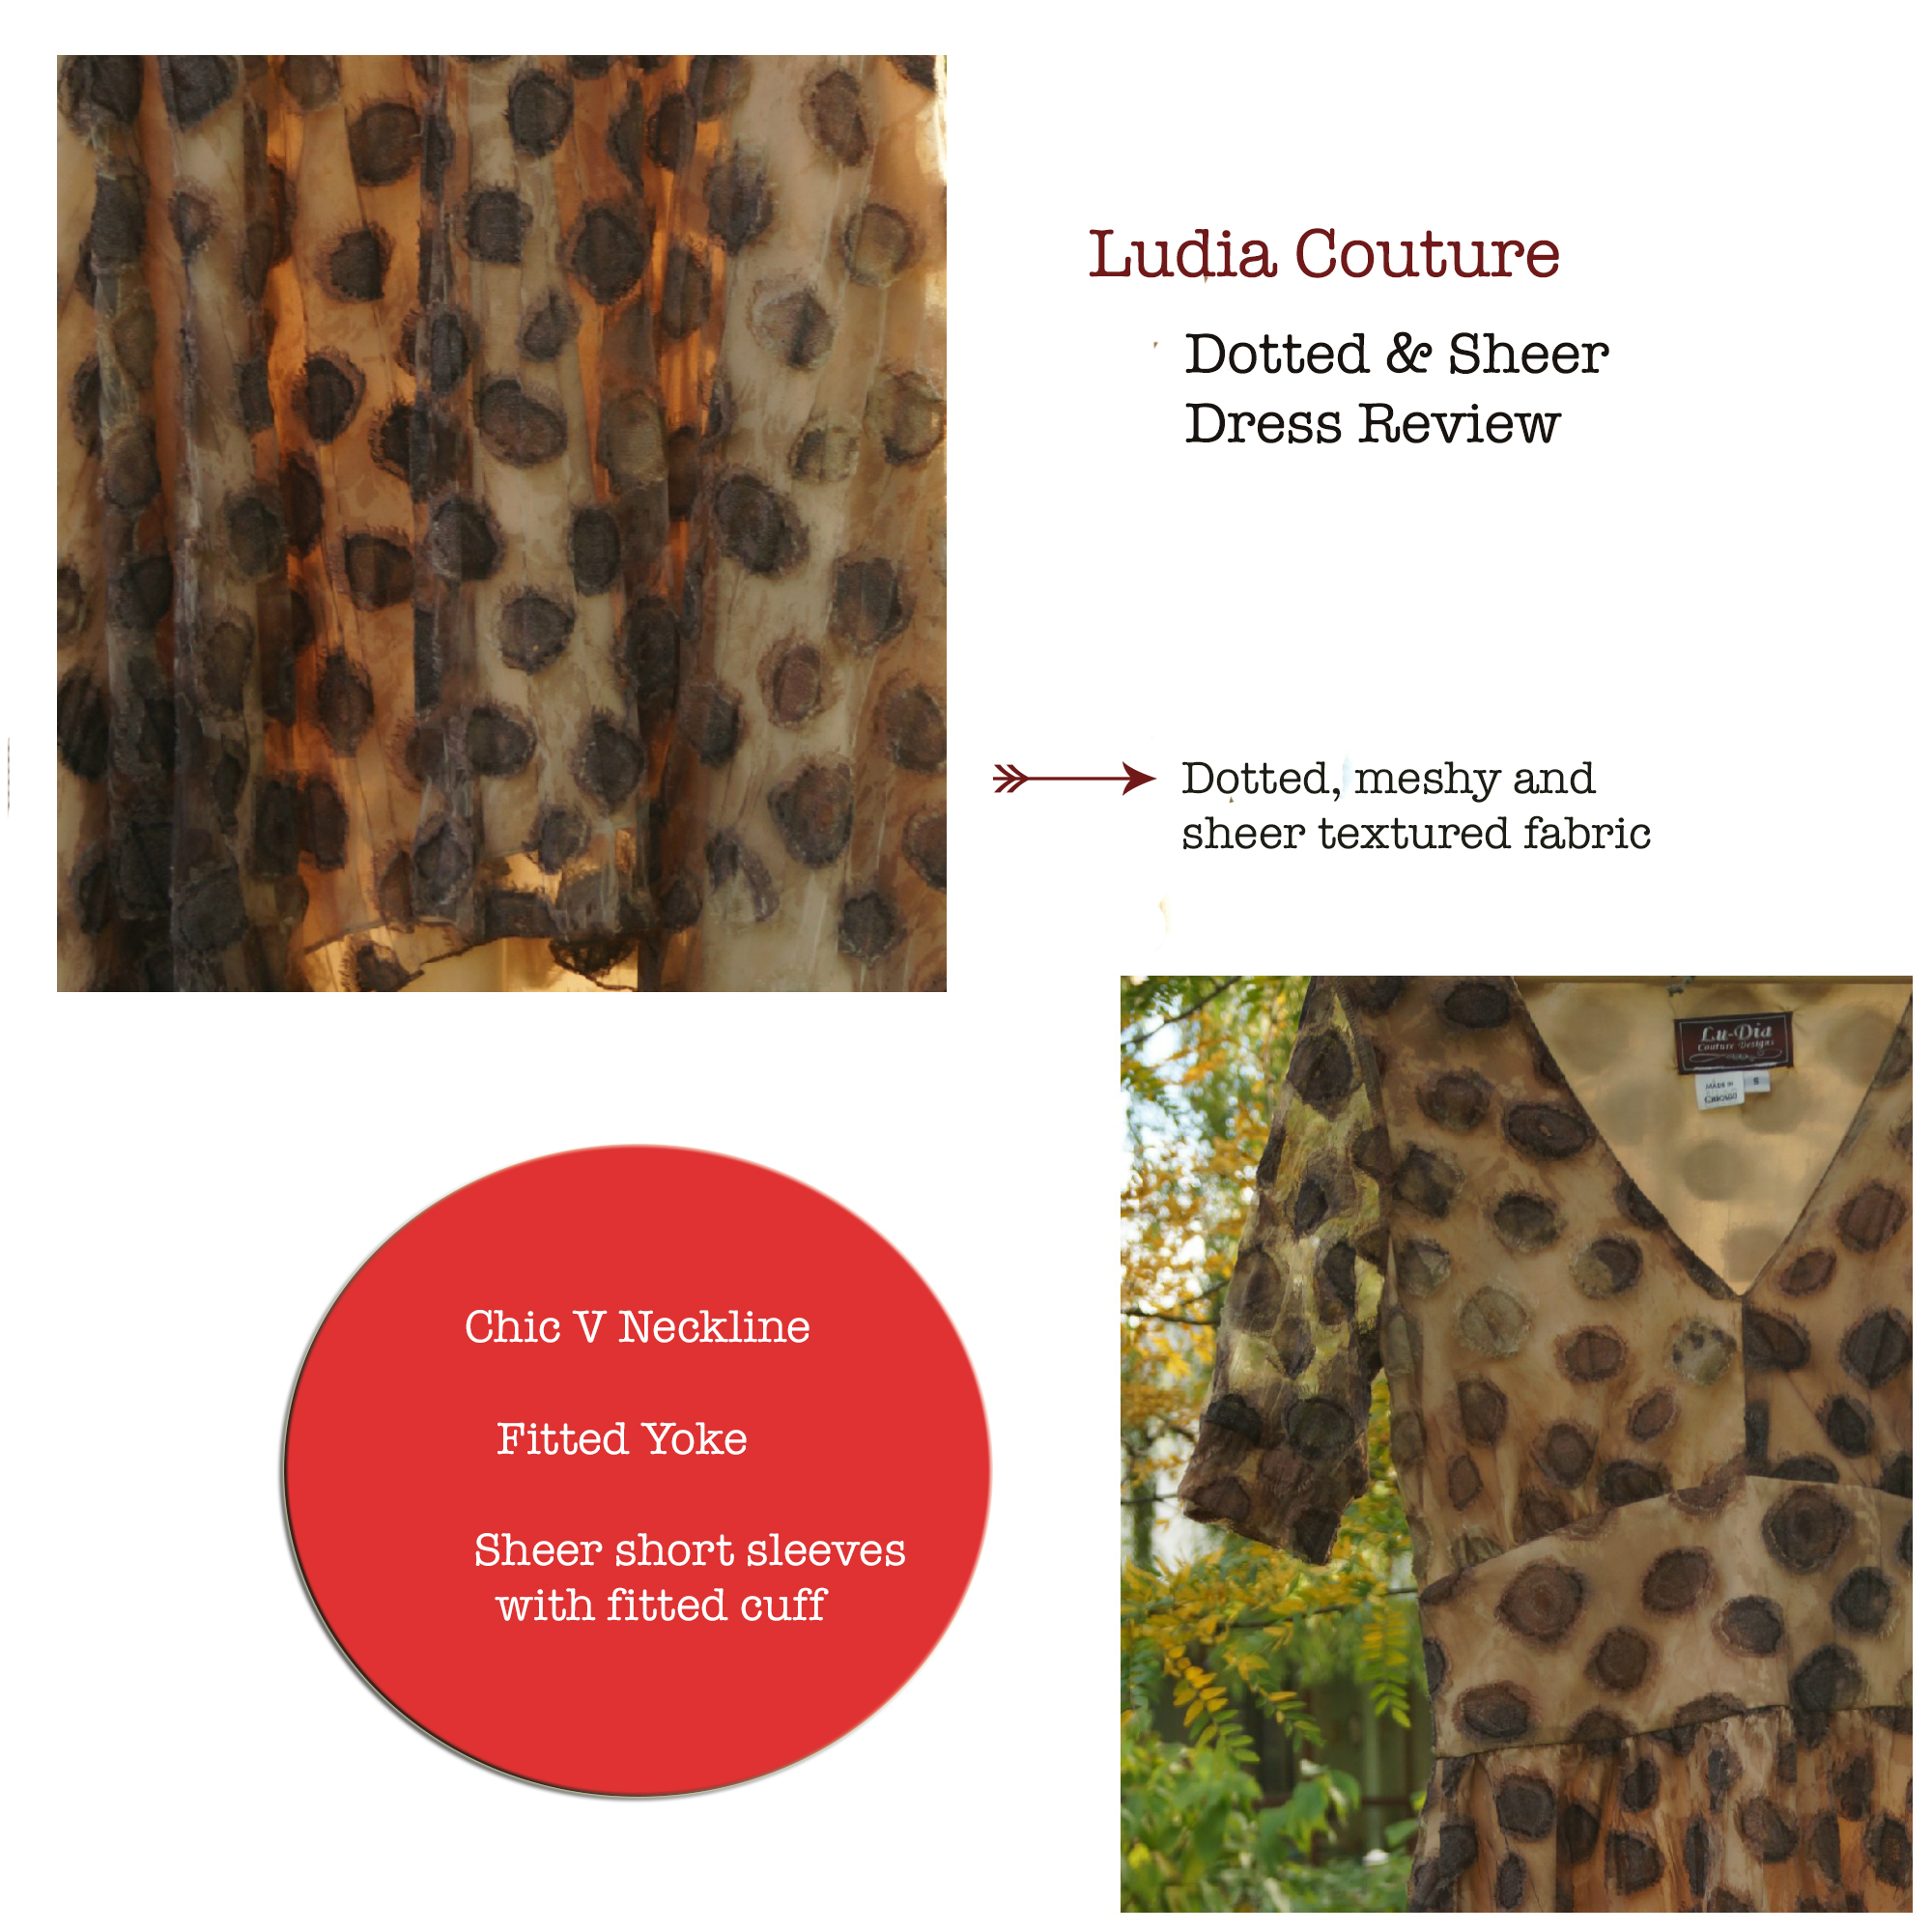 Fall Trend: Go with the flow & Ludia Couture Dress Review